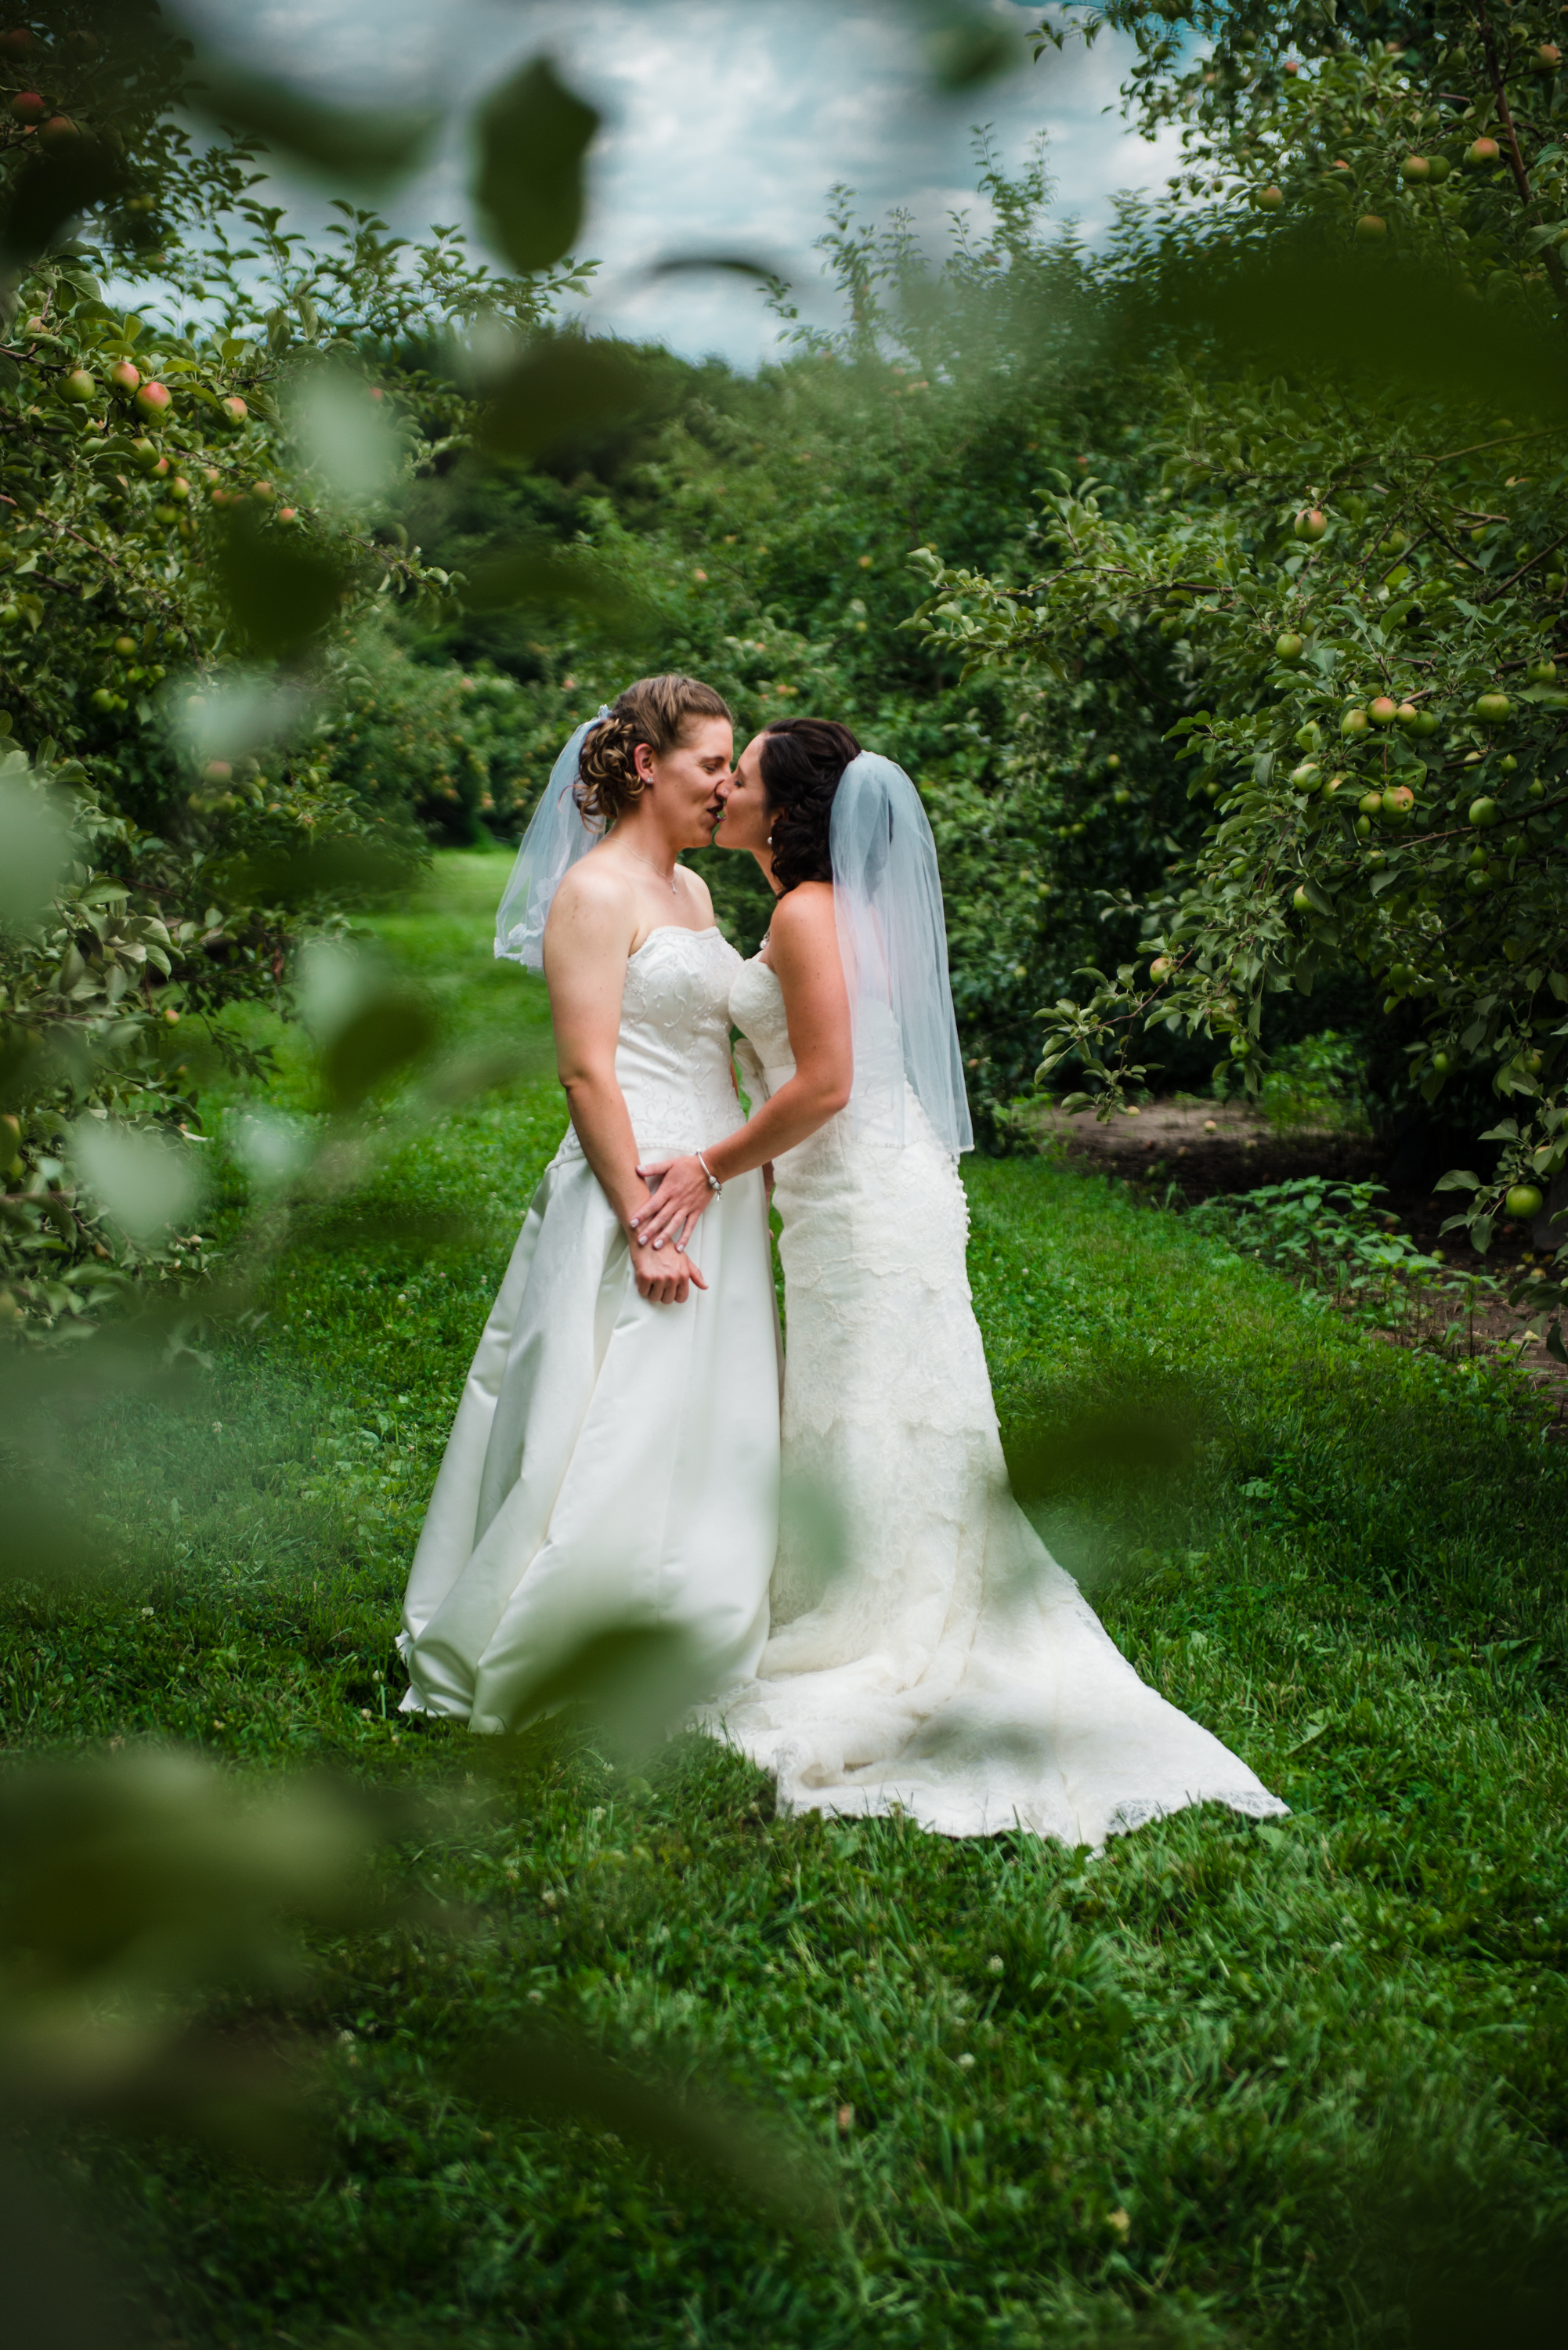 Minnesota LGBT Wedding Photography - Megan and Trista - RKH Images - First Look (51 of 60).jpg